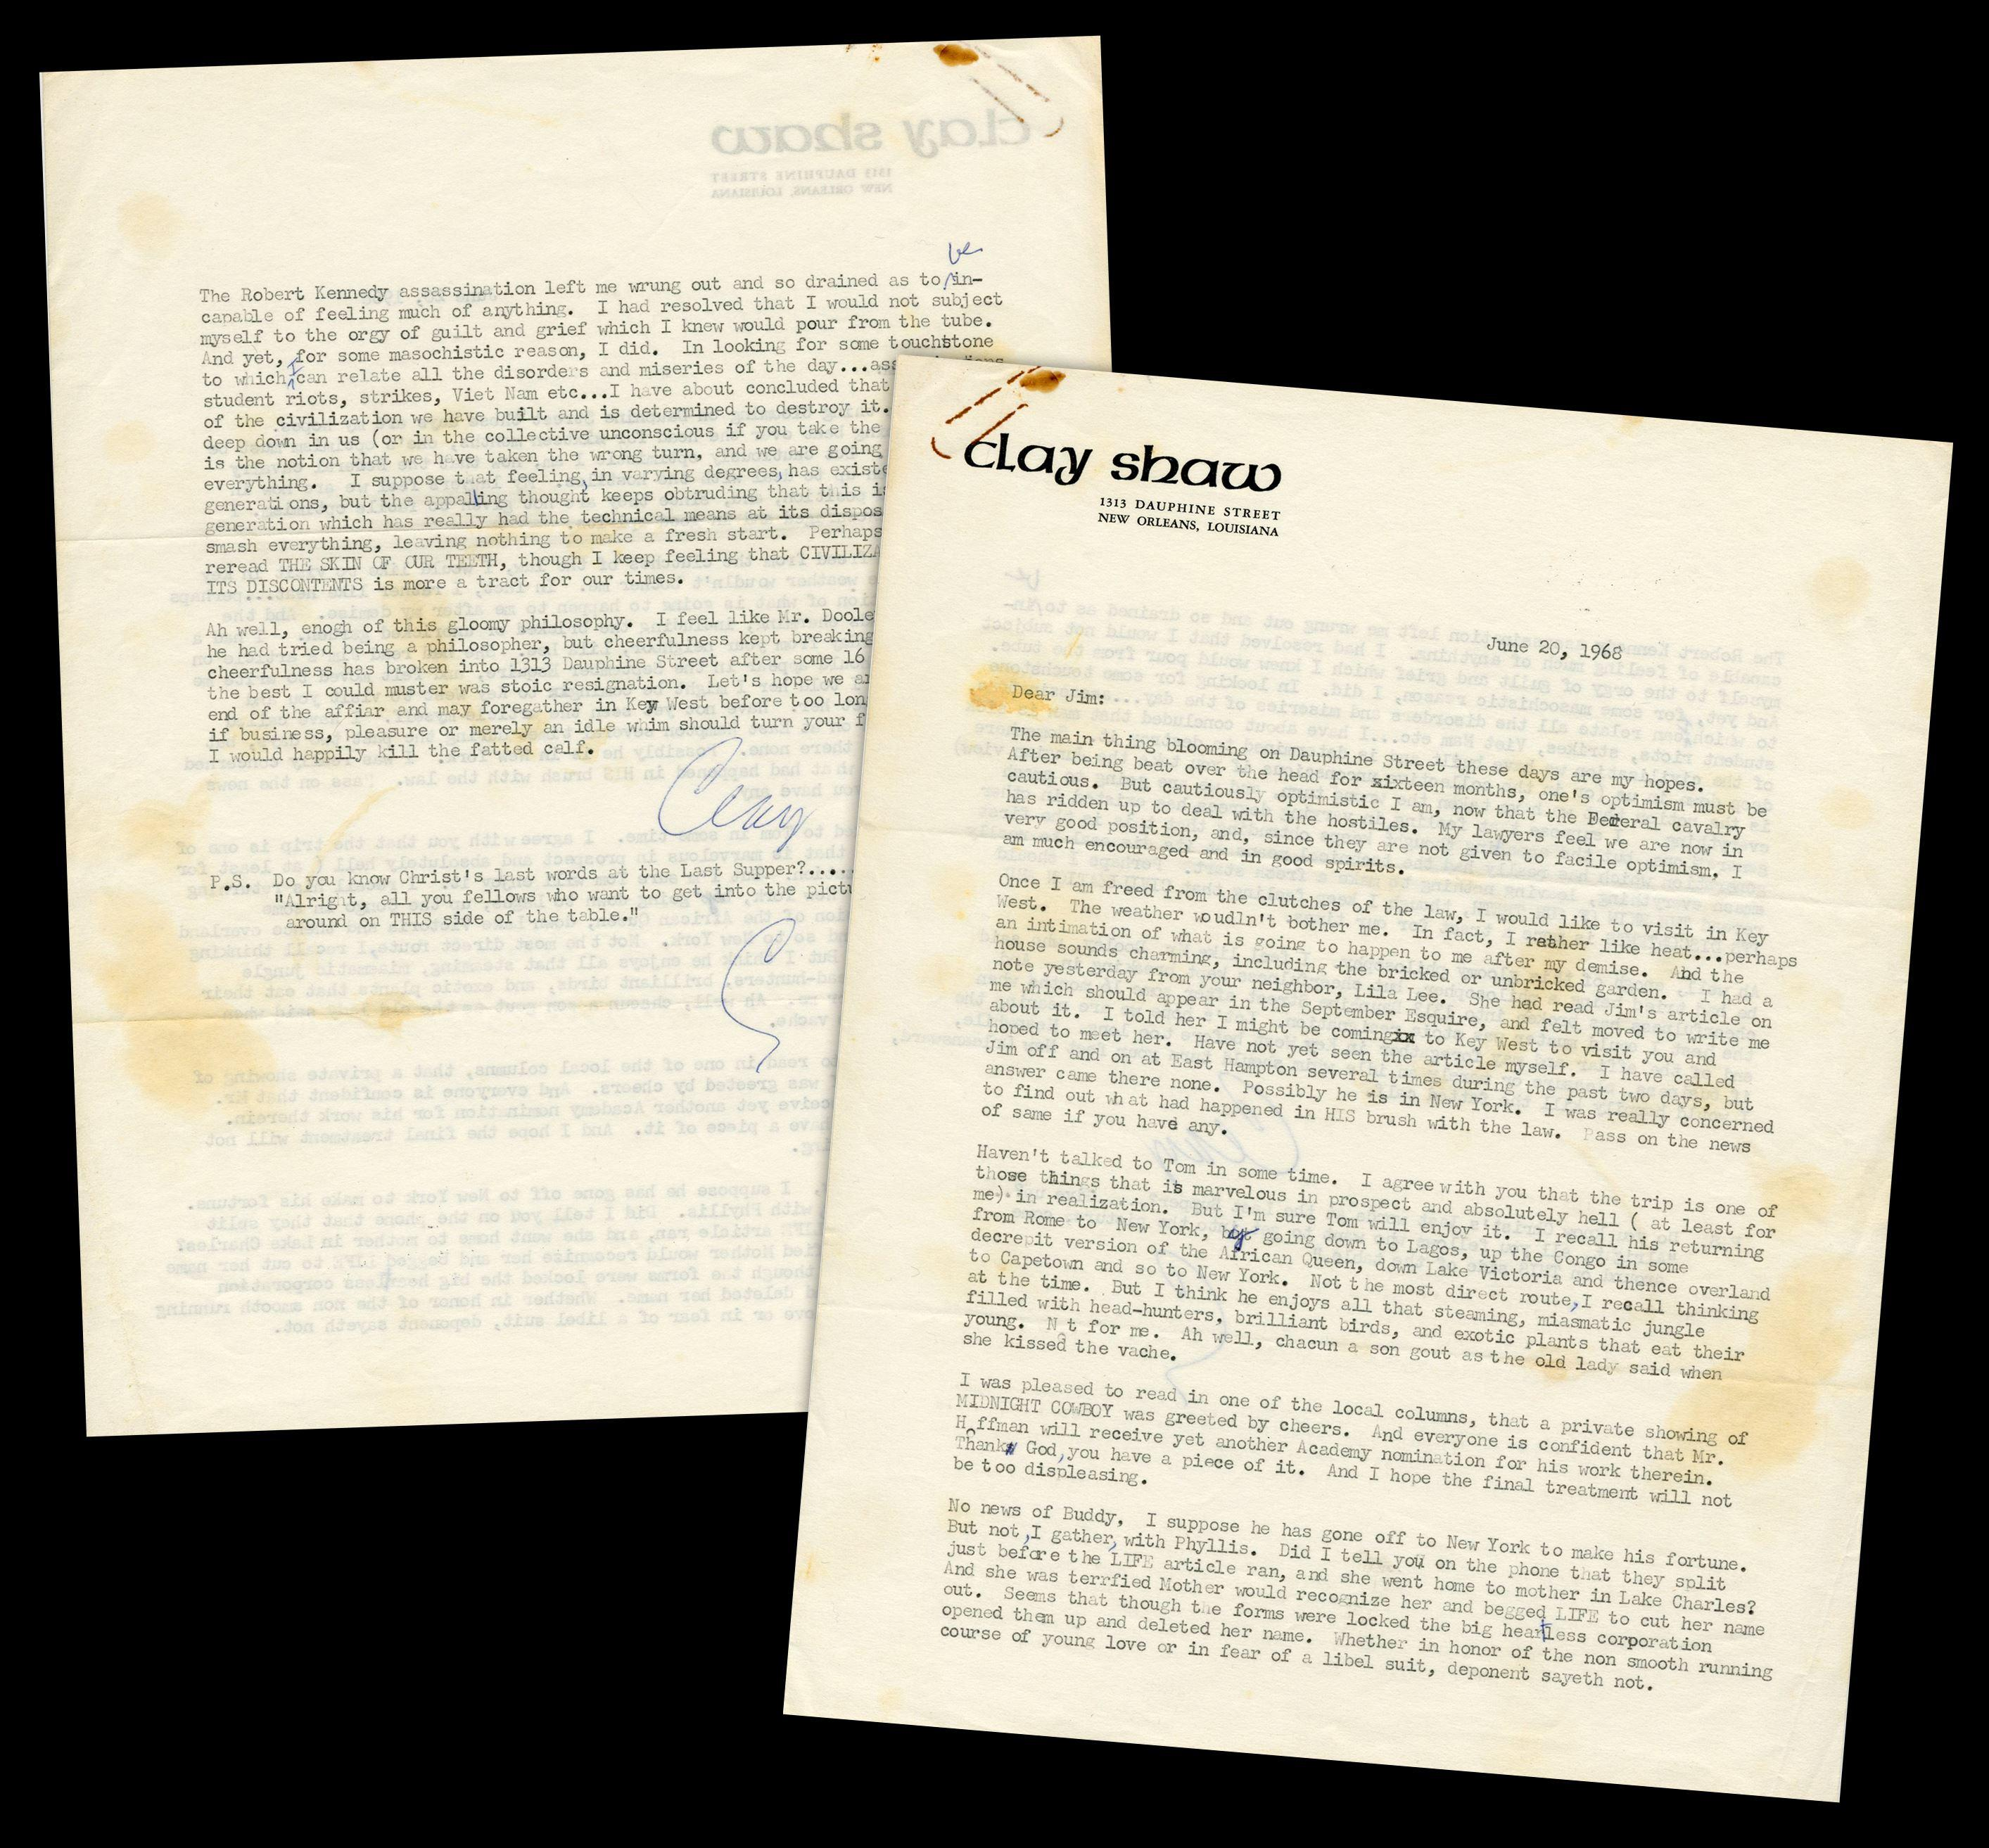 Clay Shaw, Accused of Conspiring to Assassinate JFK, Superb Letter Re: Criminal Charges & the Assassination of RFK